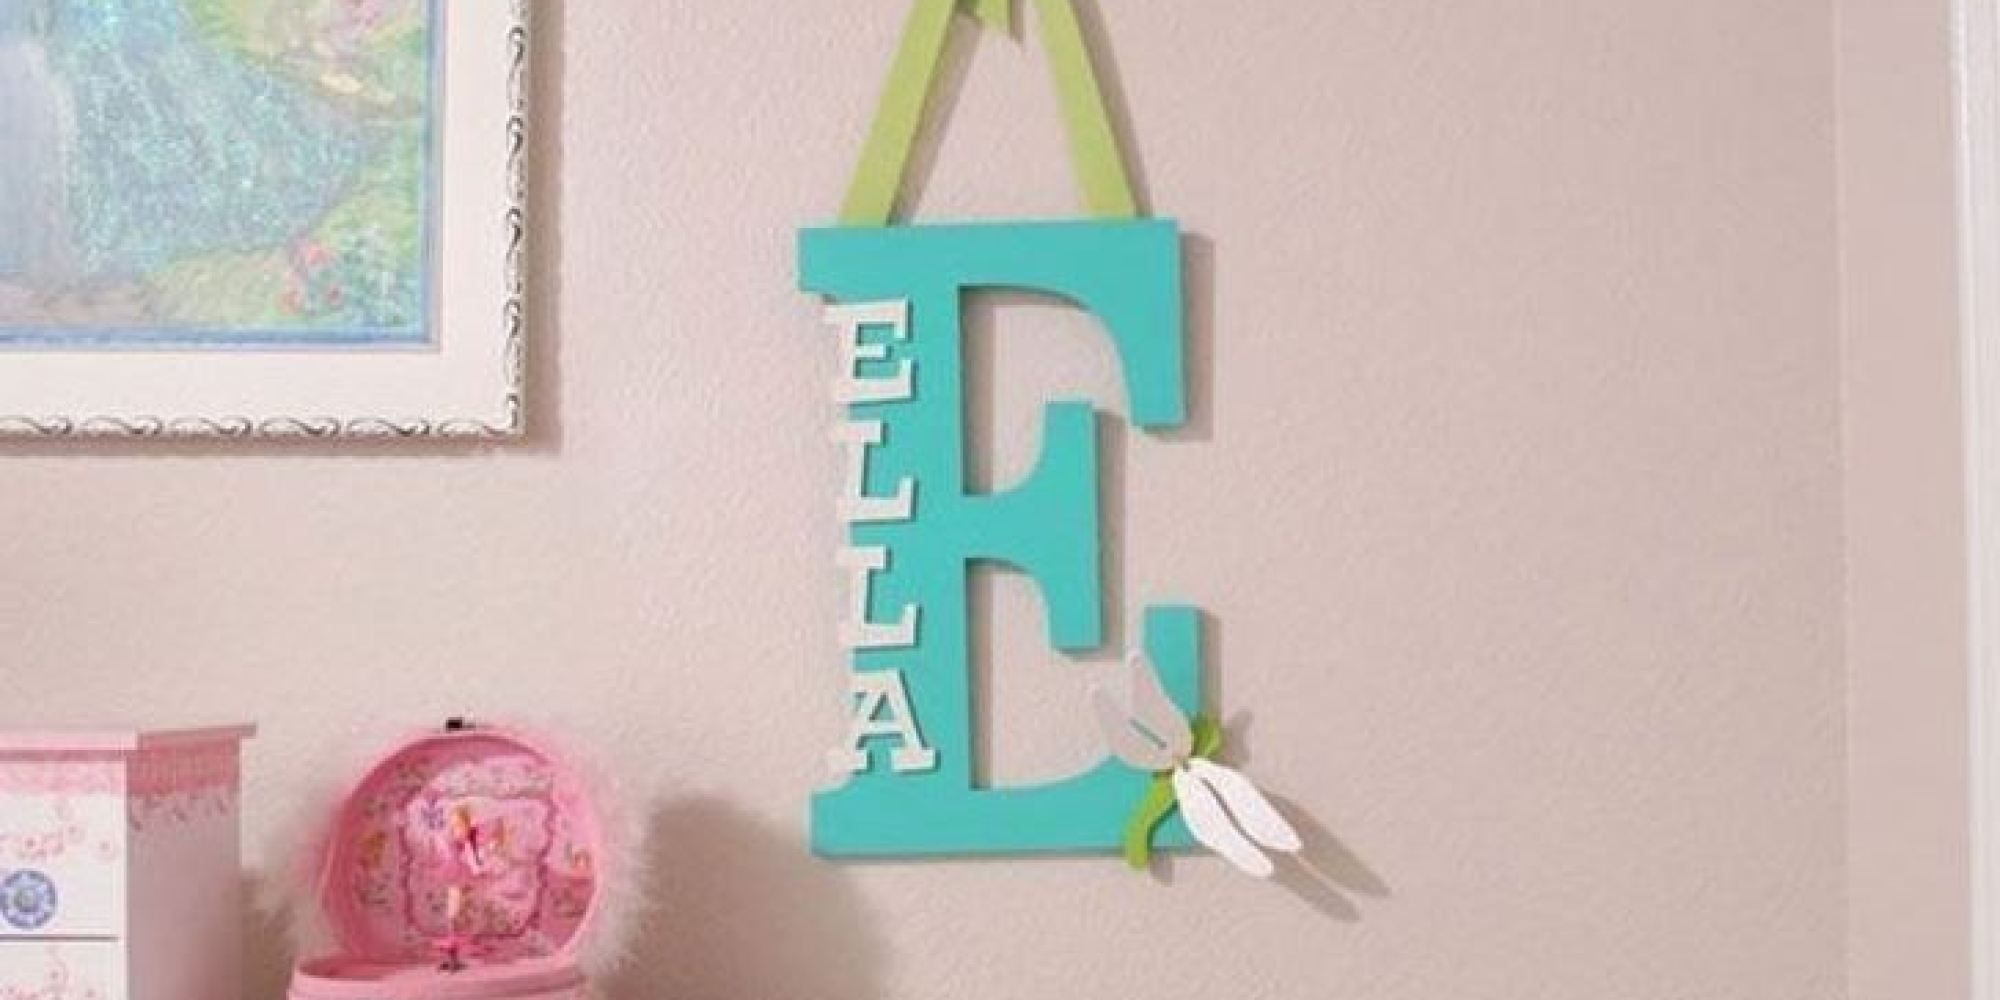 Best Baby Name Decor 15 Ways To Personalize Your Baby S Nursery This Month